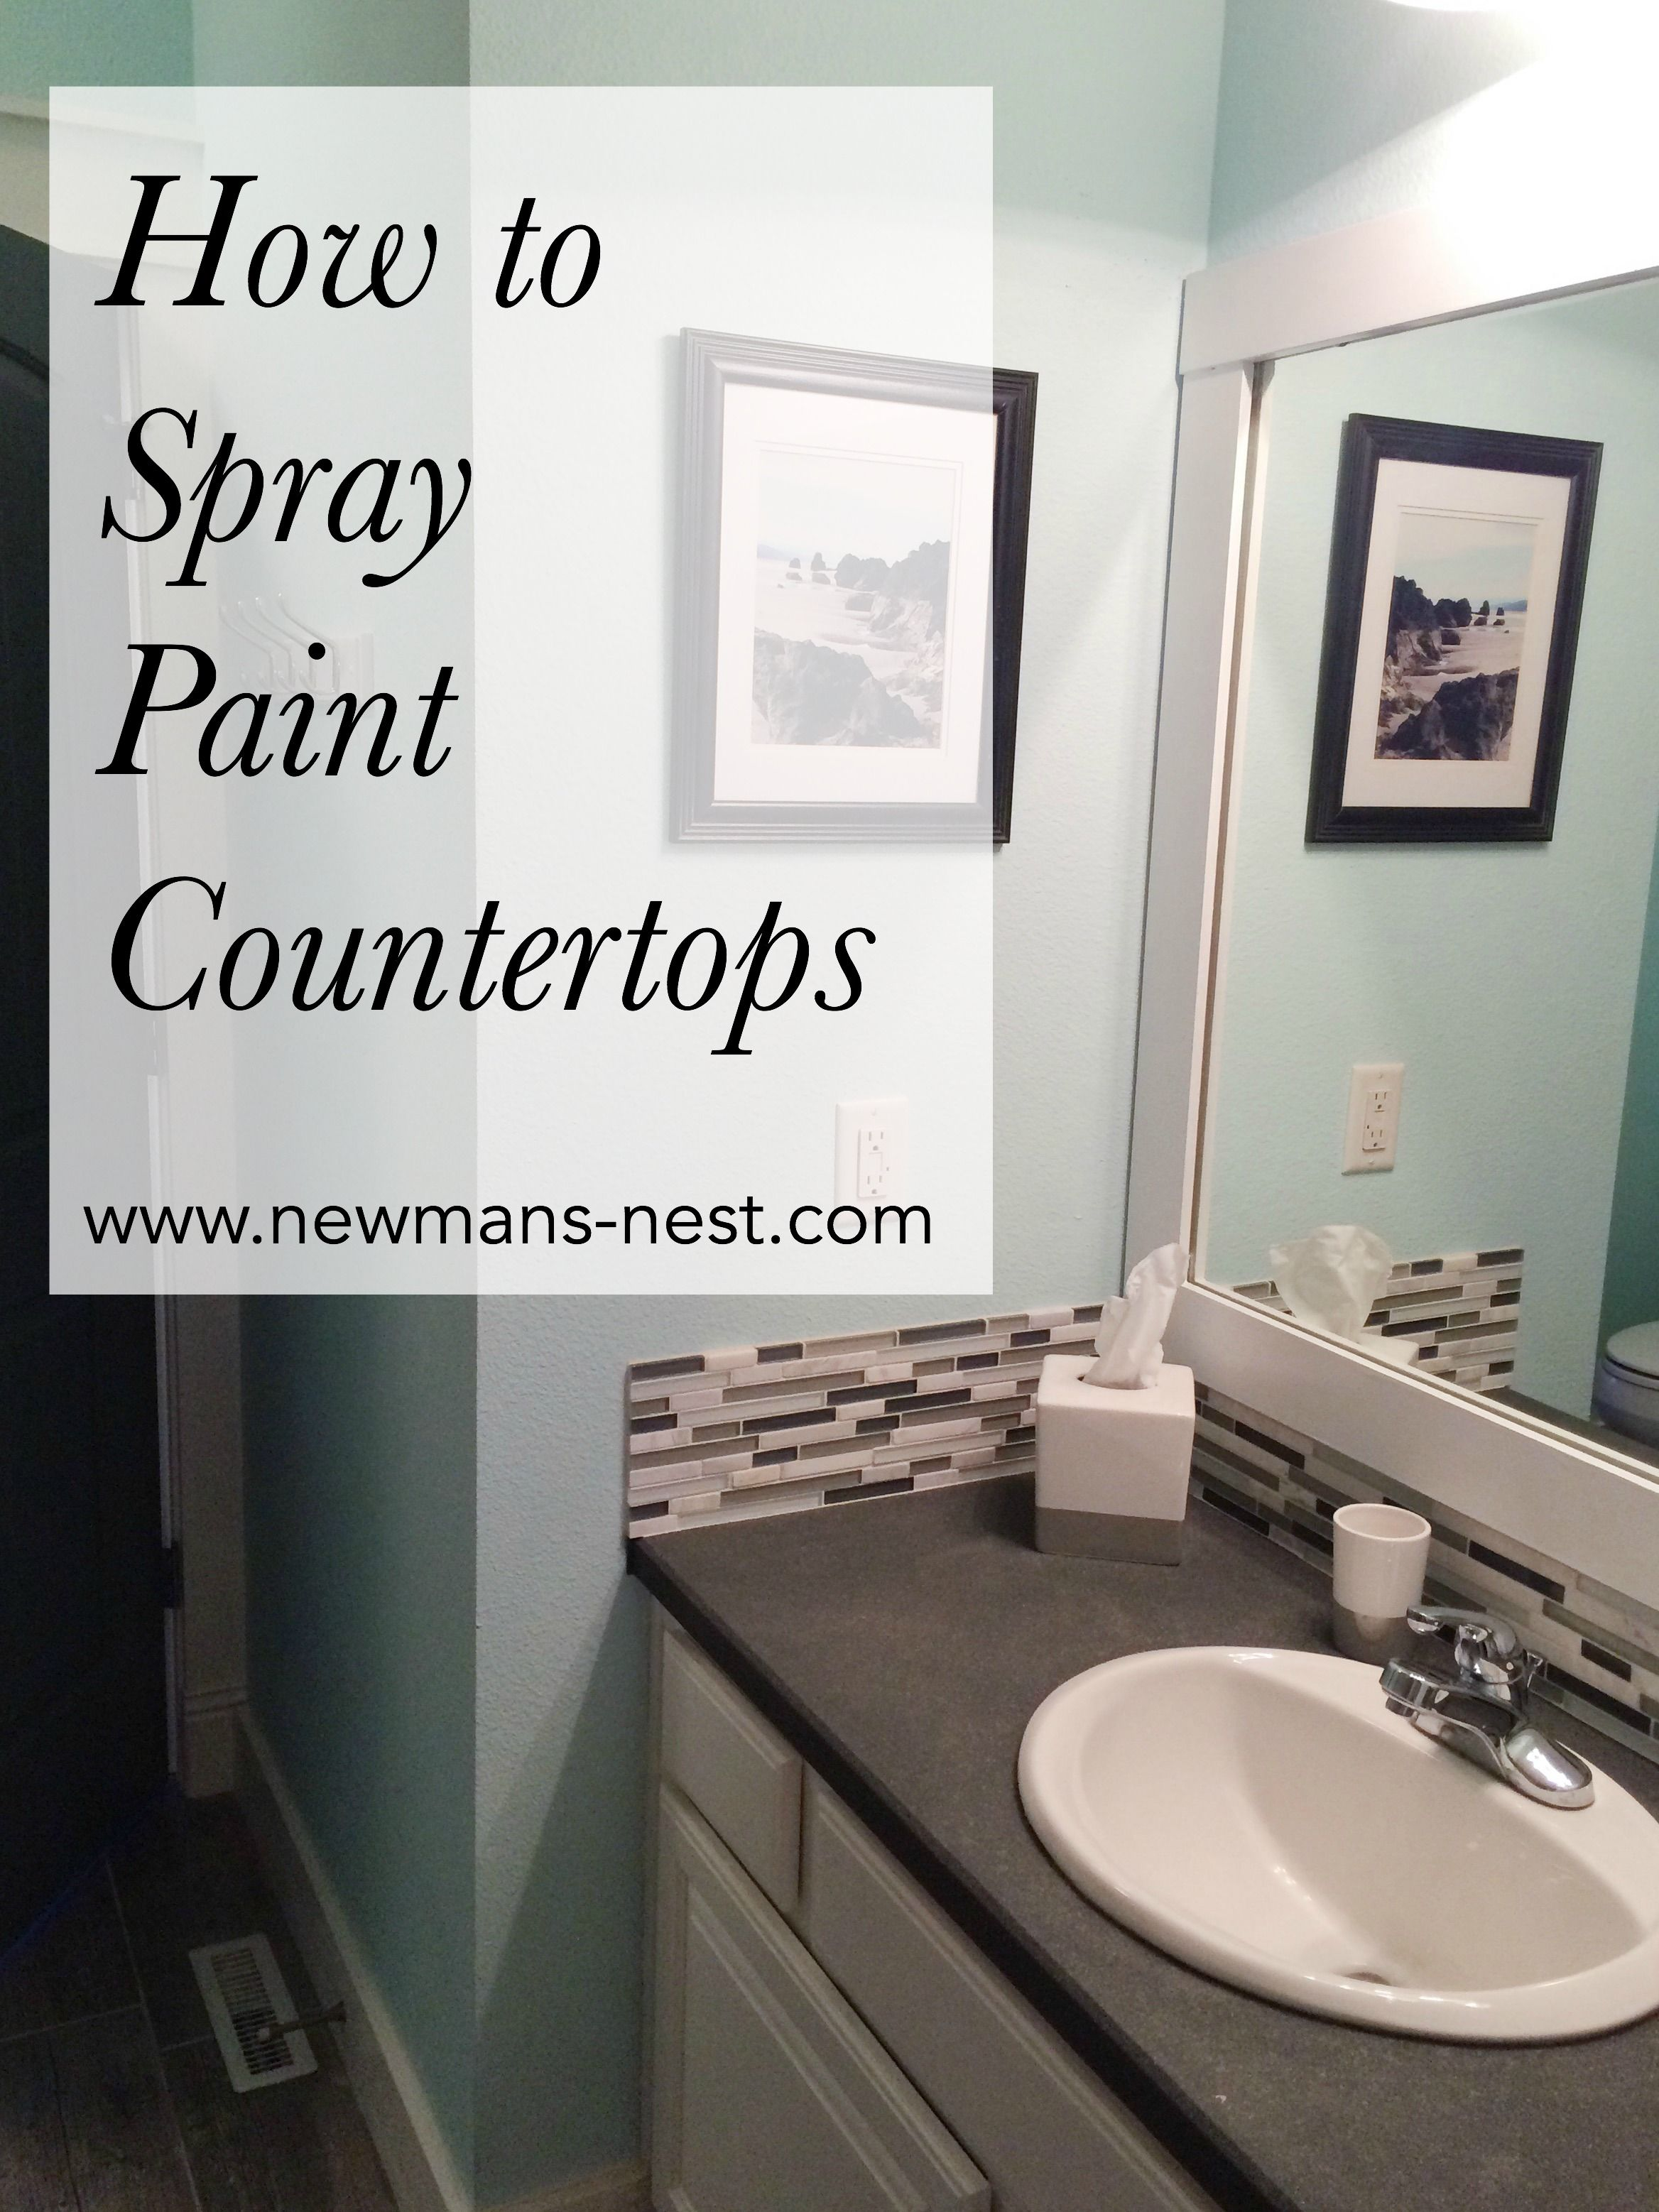 For Our Guest Bathroom I Wanted An Inexpensive Upgrade That Would Completely Change The Cur Countertops So Had Begun Online Search Of Methods To